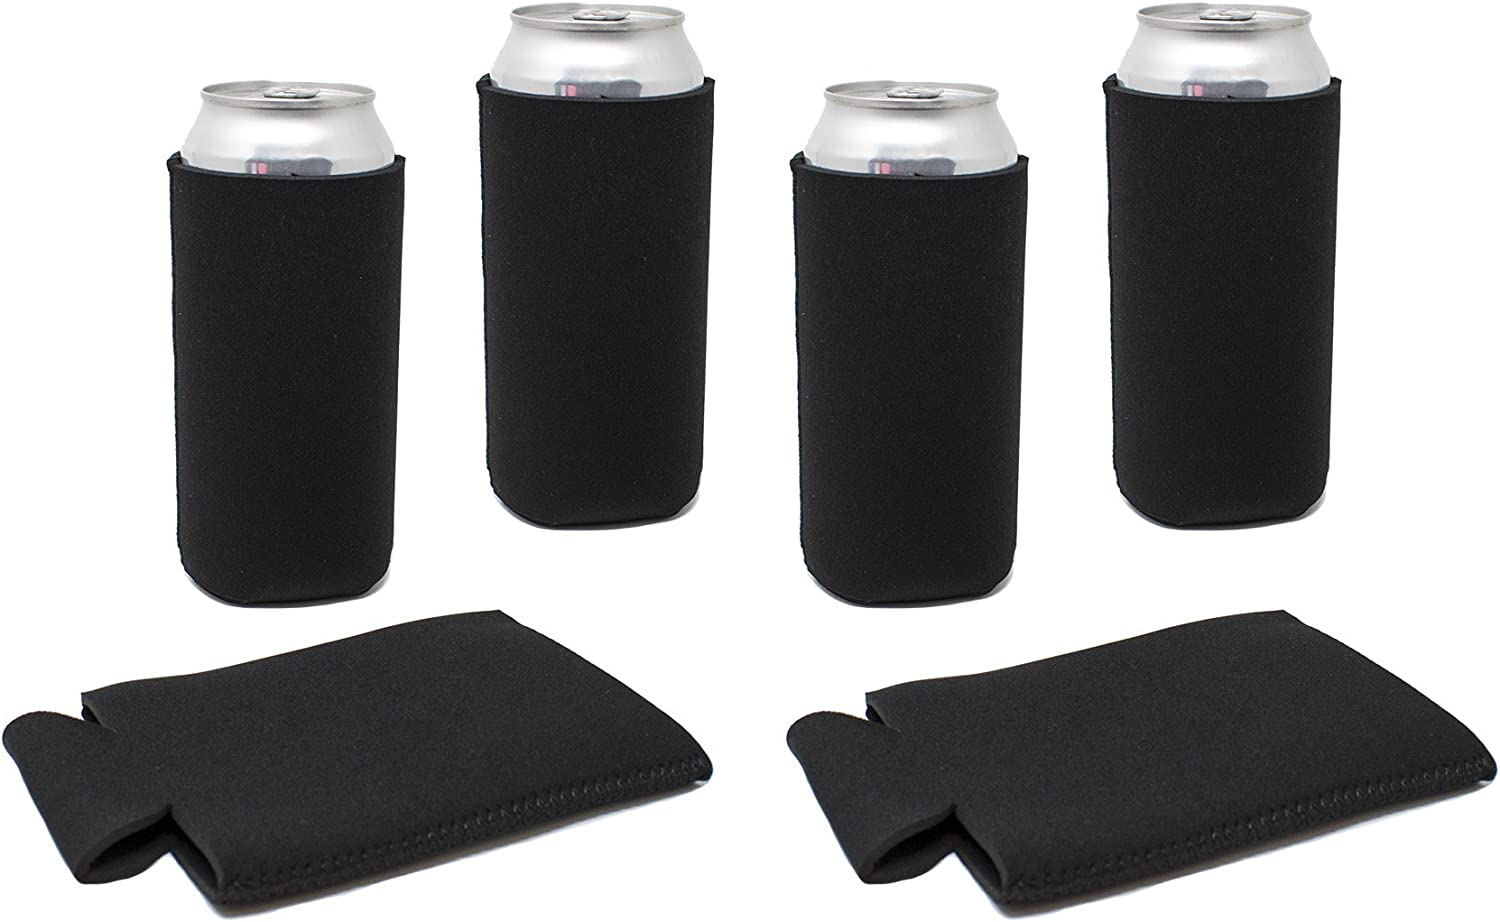 TahoeBay 16oz Can Sleeves - Black Neoprene Beer Coolies - Blank Tall Energy Drink Coolers - Compatible with 16oz Cans (Black, 6)